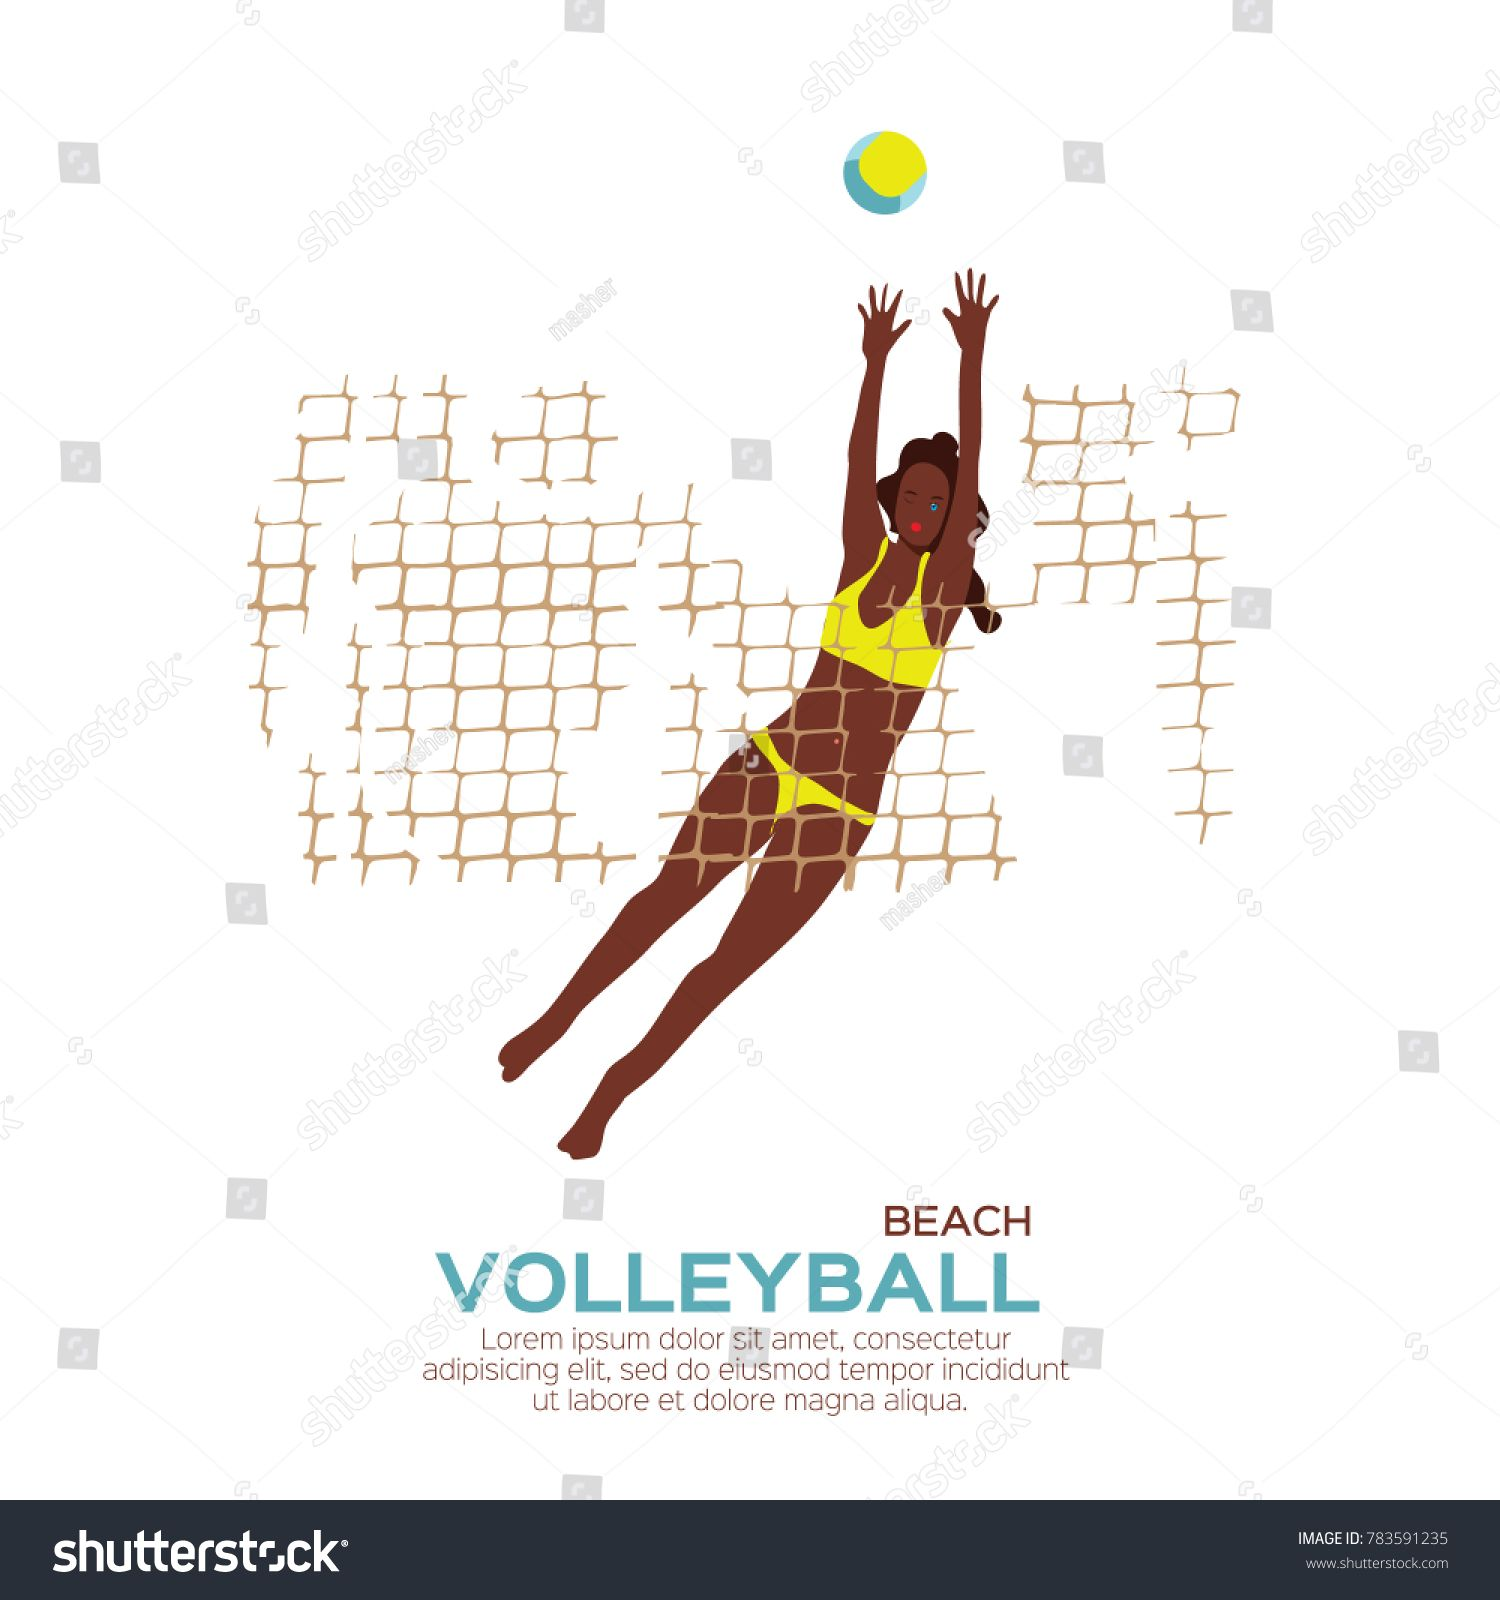 Beach Volleyball Is Popular Sport Game Funny Young Woman With Ball And Net Championship Volleyball Net Illu In 2020 Popular Sports Beach Volleyball Volleyball Humor